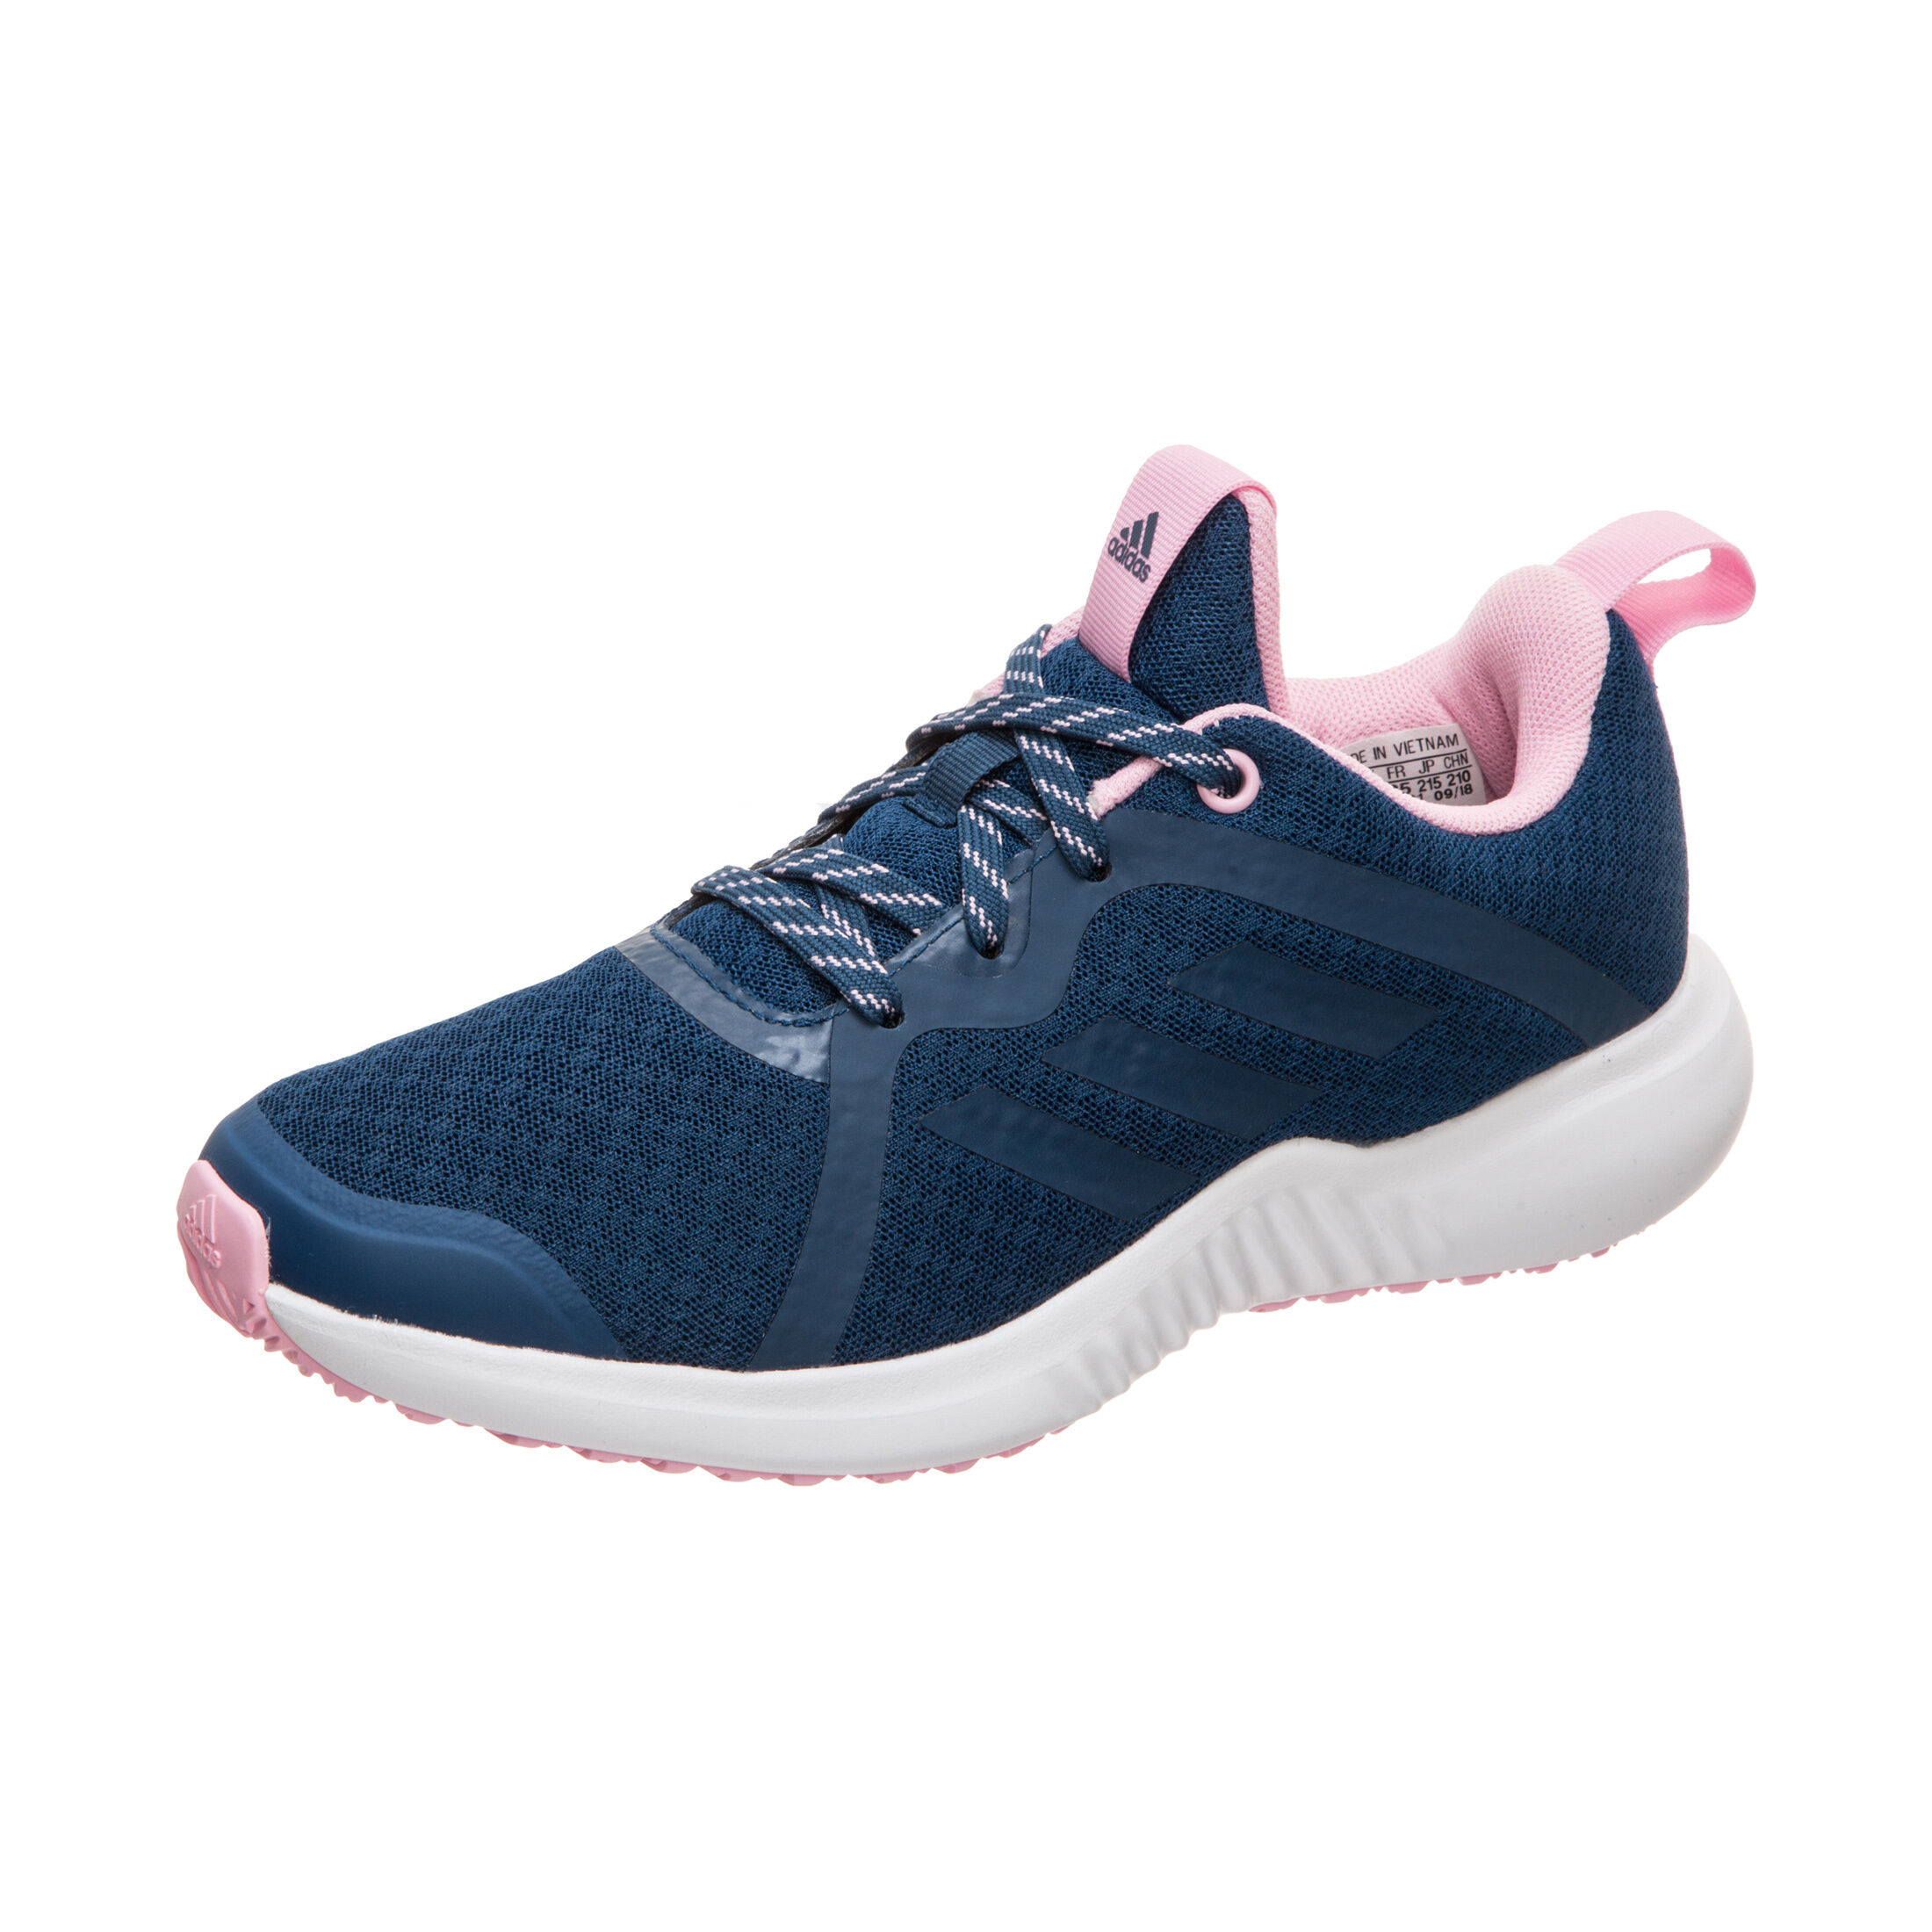 X Bei Fortarun Kinder Outfitter Adidas Performance NwOnvm80